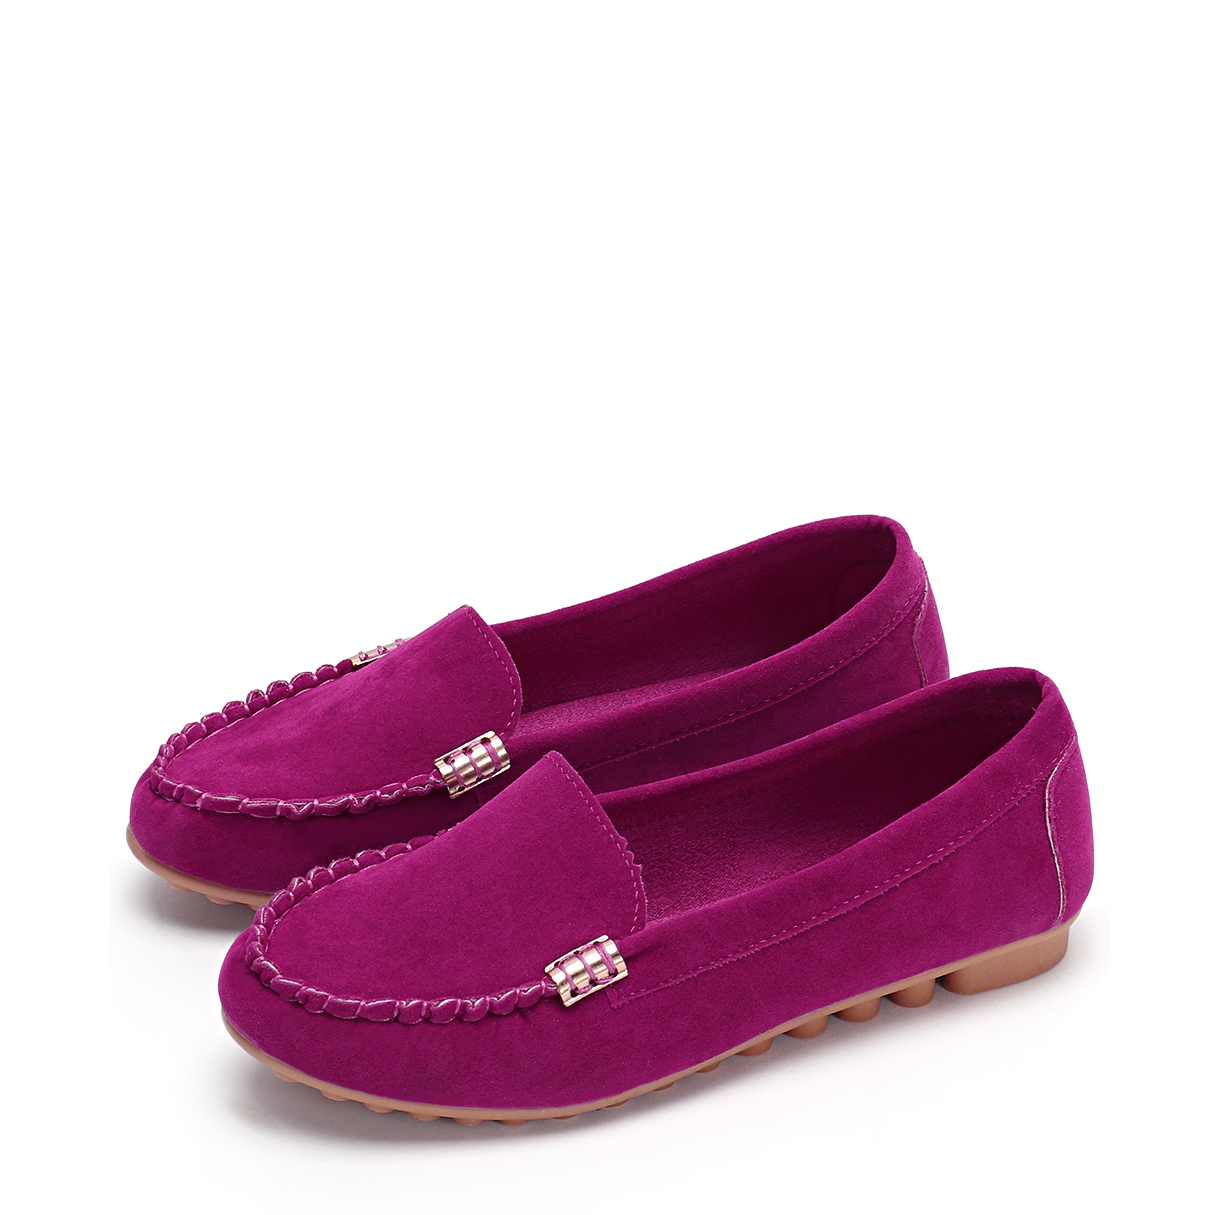 Rose Plain Design Round Toe Moccasin Loafers